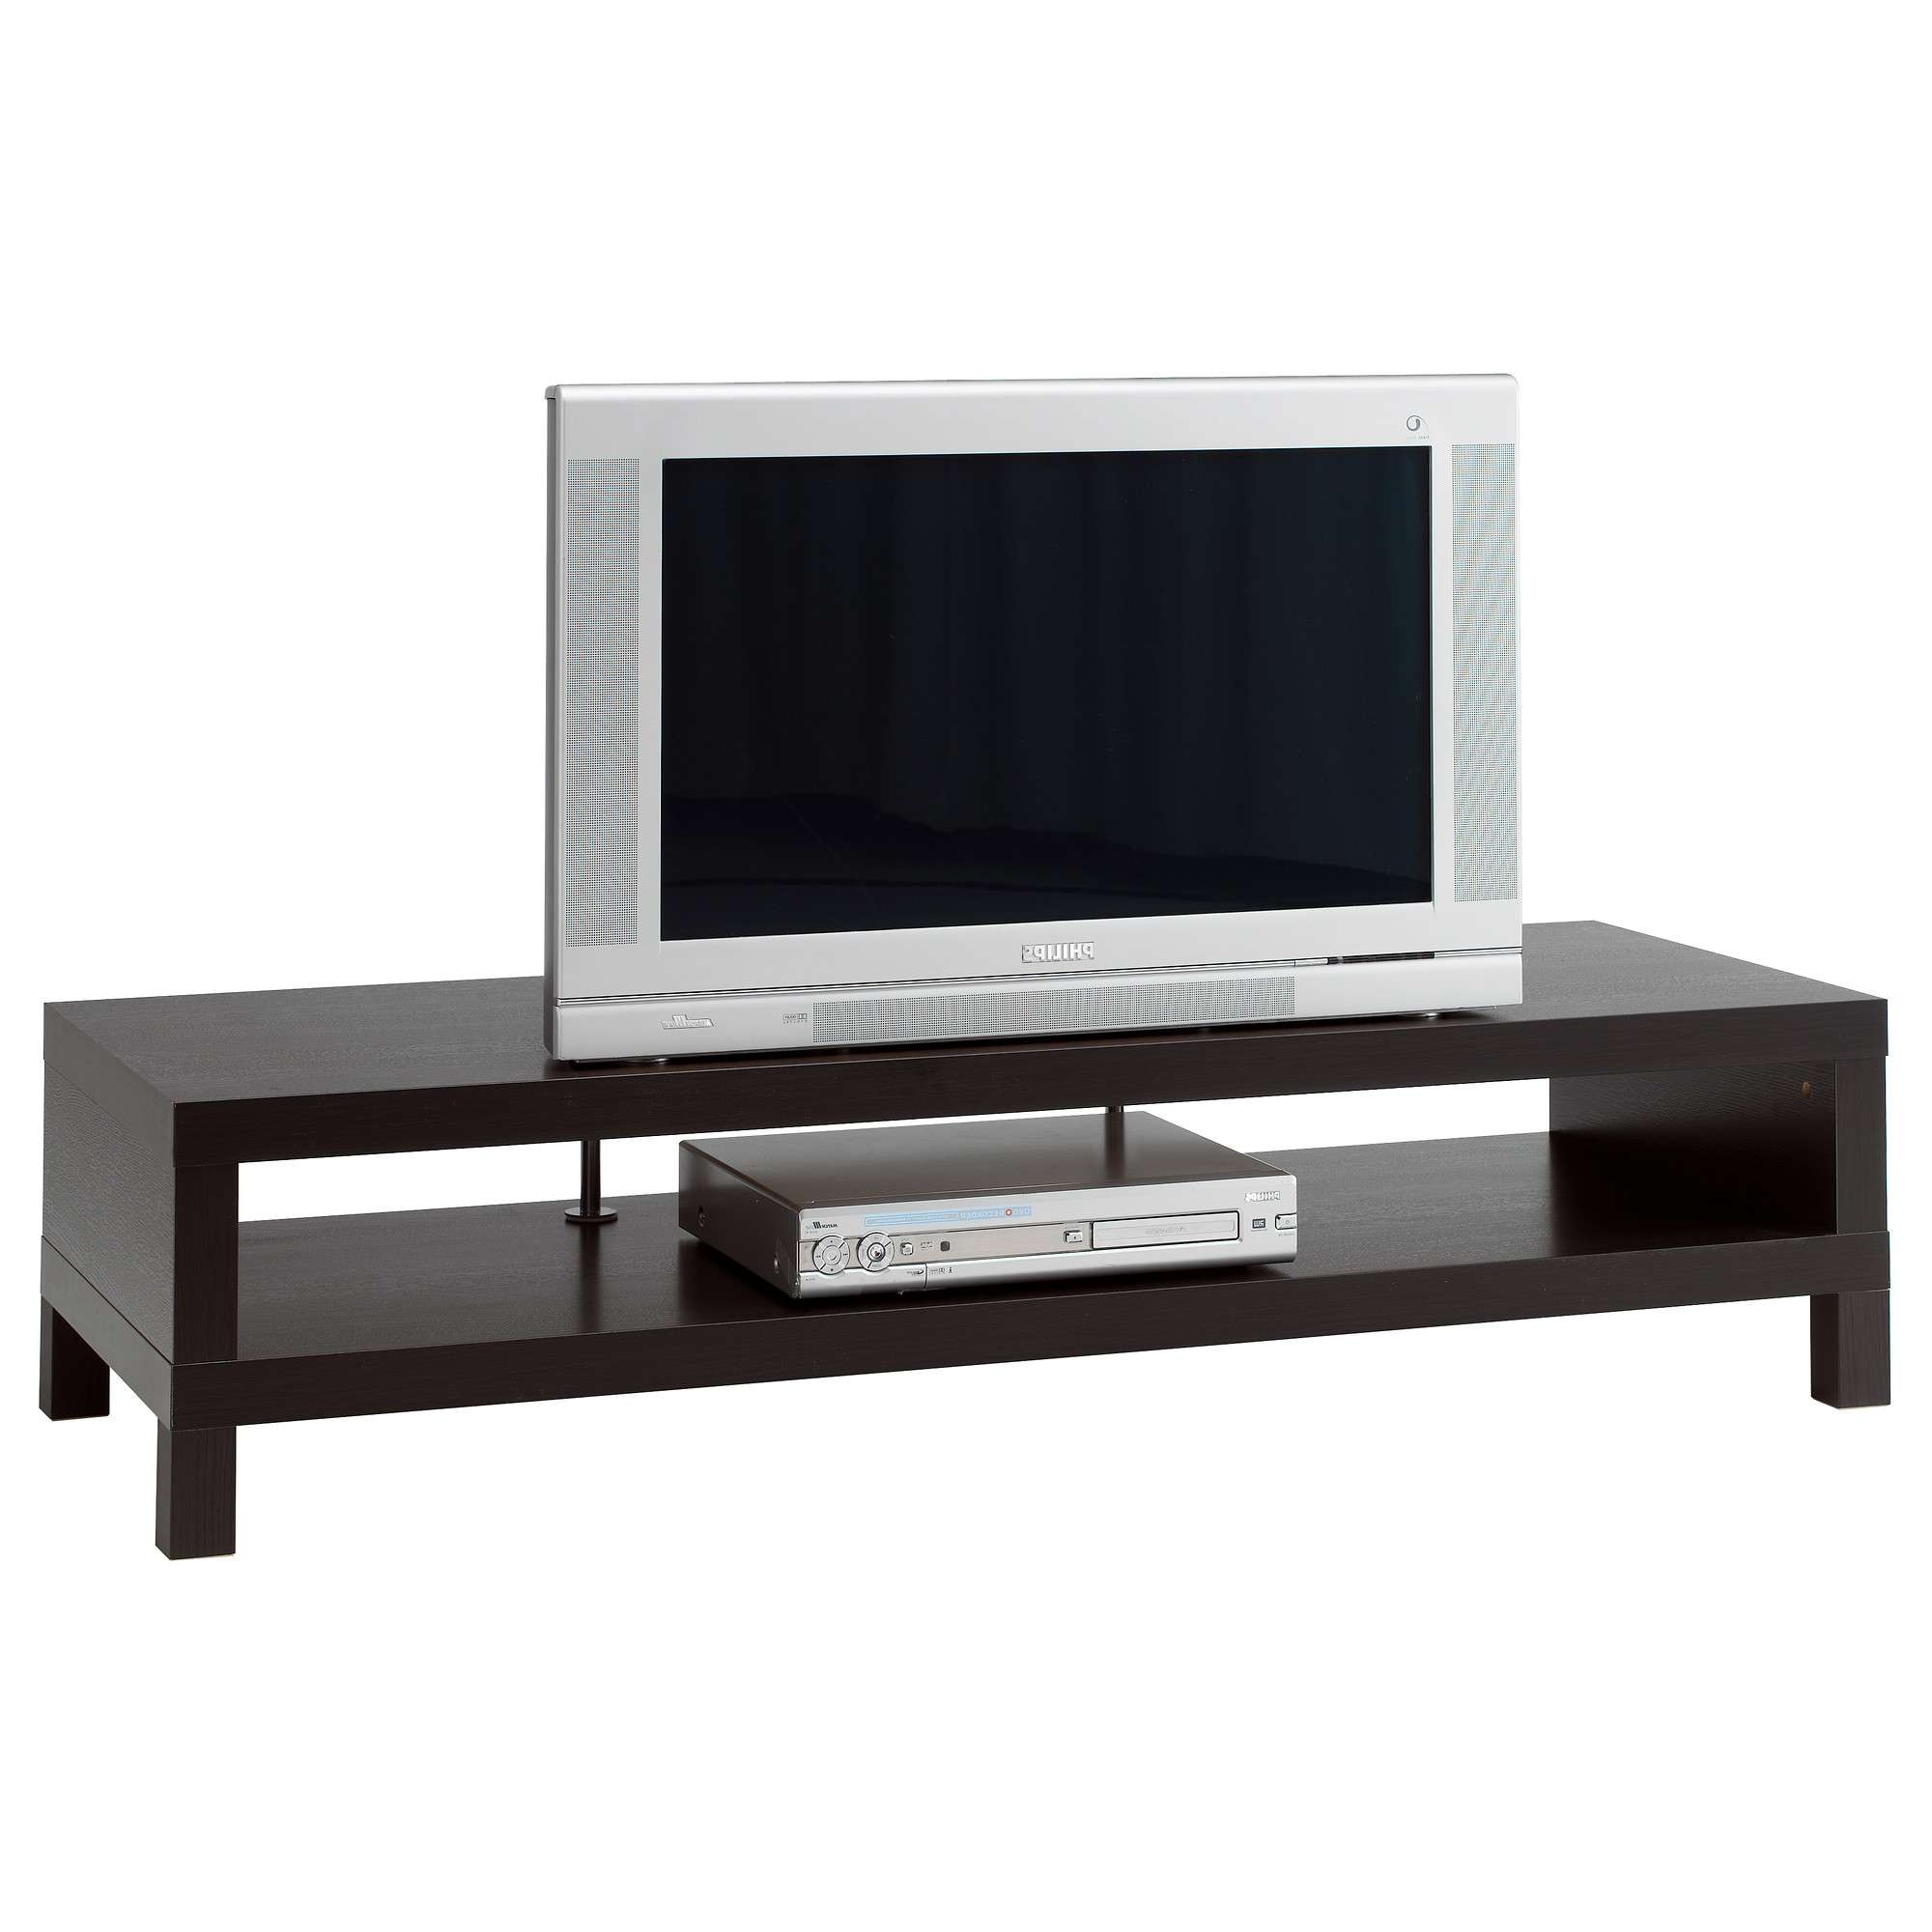 Lack Tv Unit – Ikea With Tv Stands 38 Inches Wide (View 10 of 15)